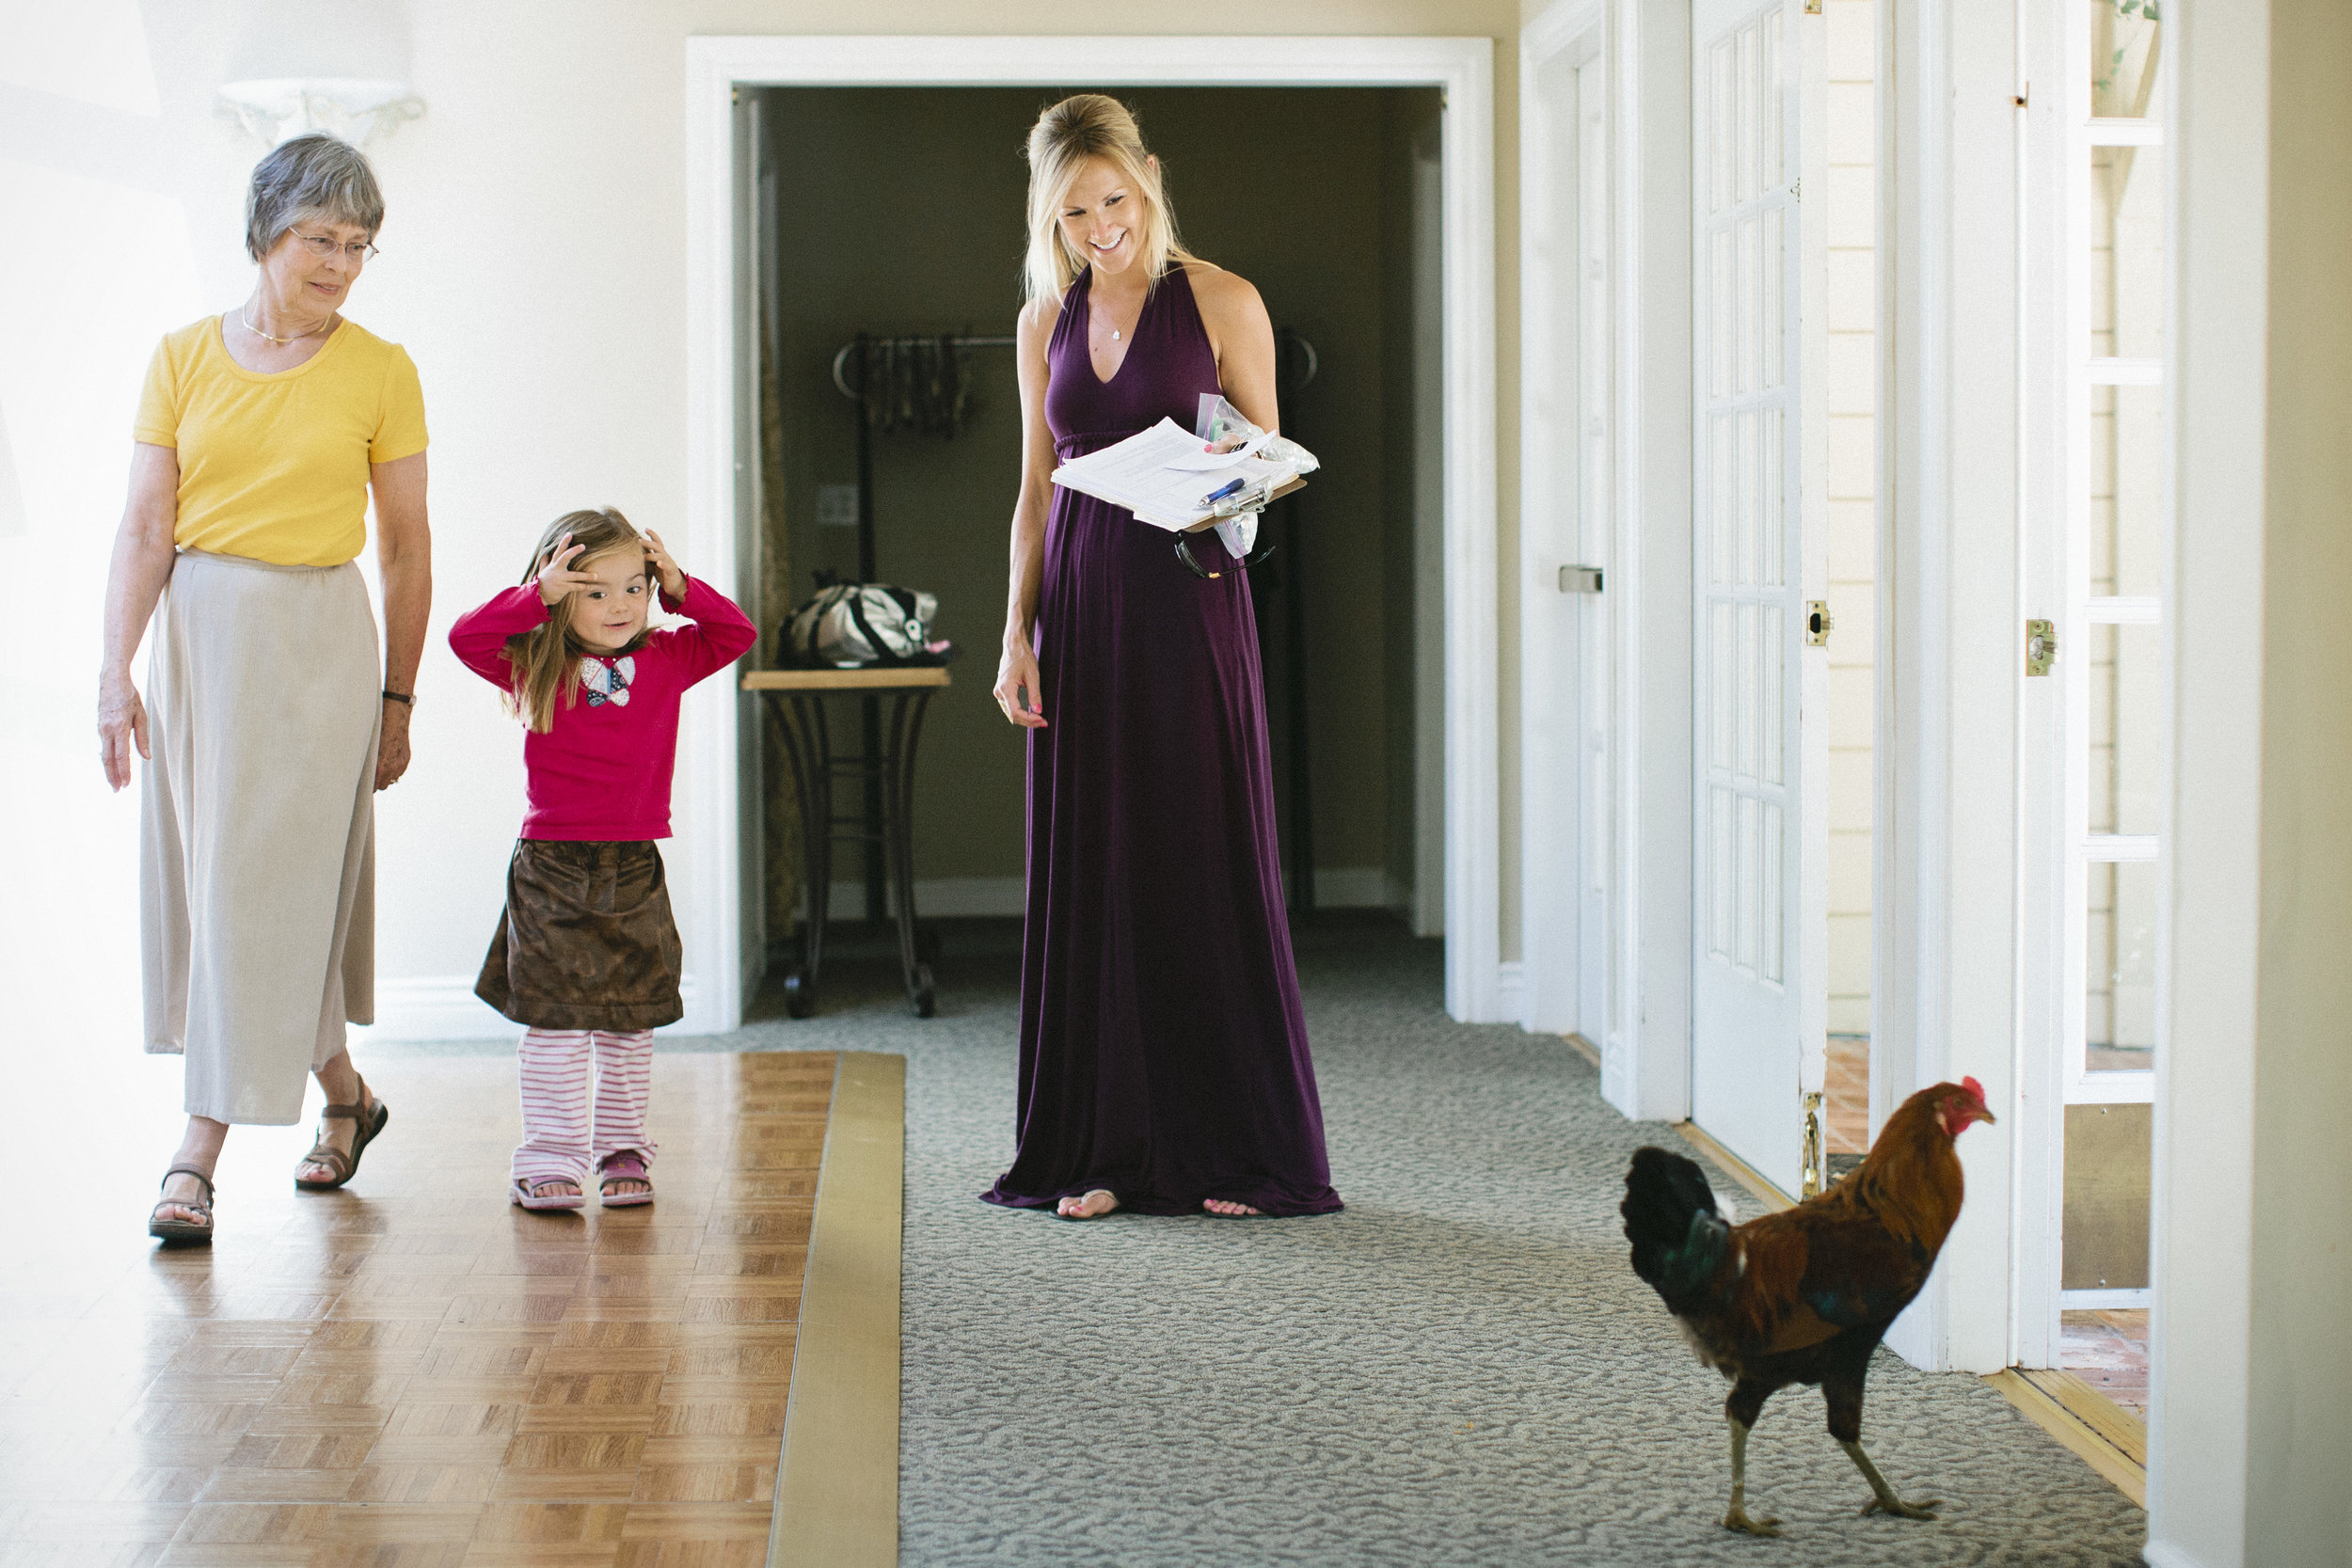 A rooster's surprise visit to a getting ready area made for a fun moment.